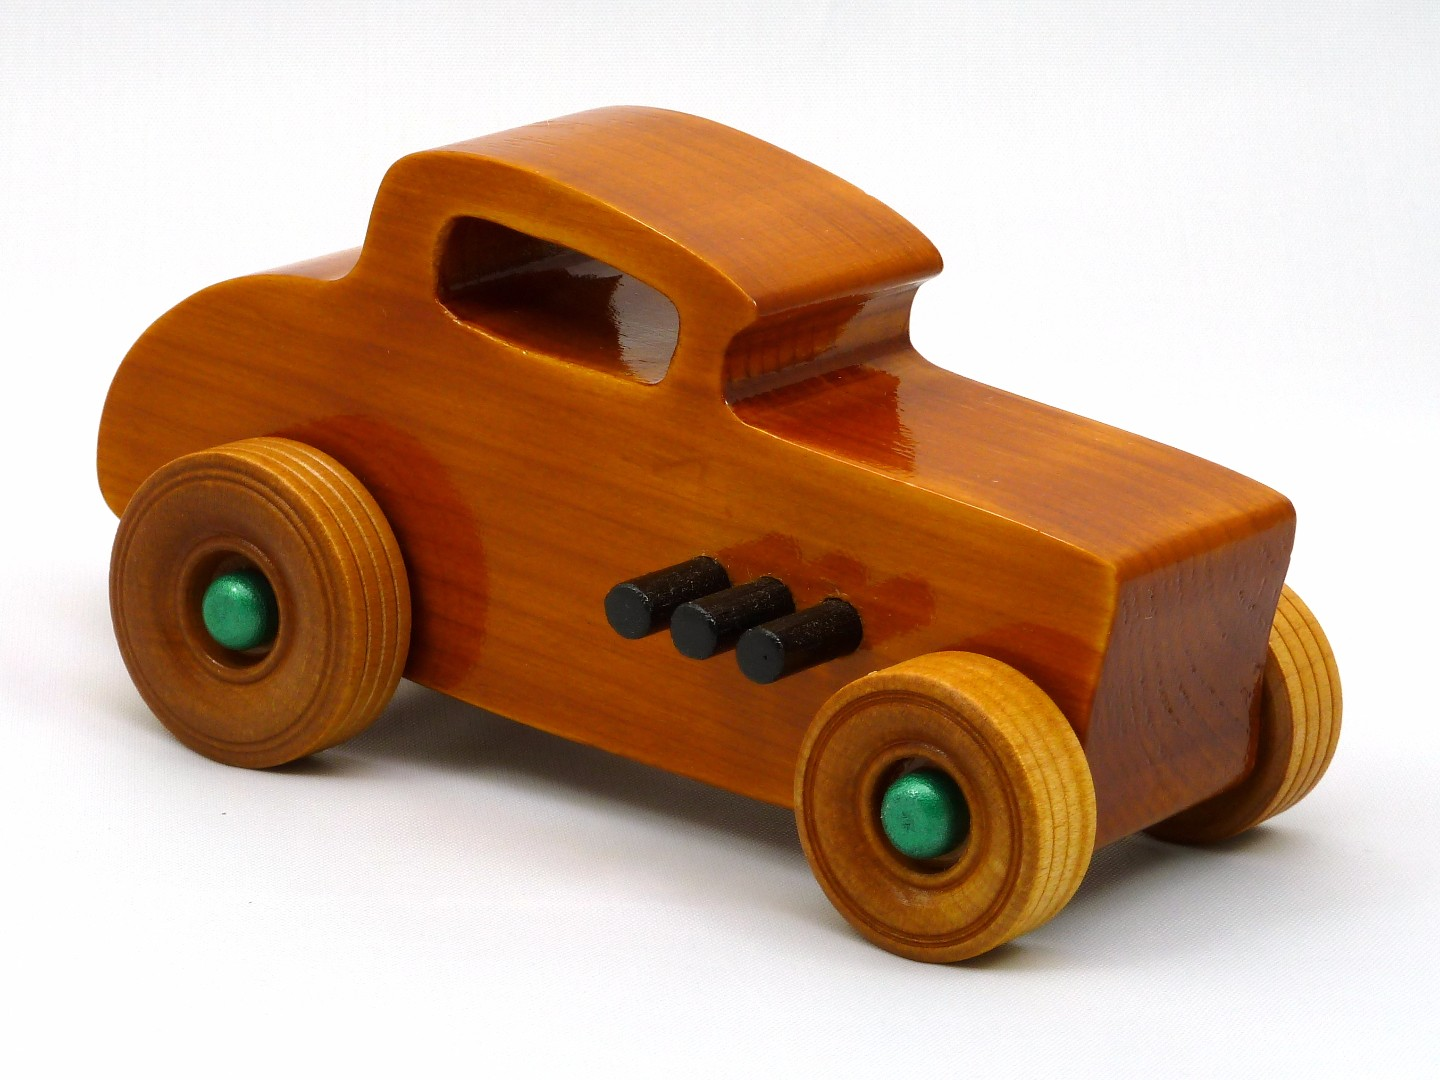 20170902-134437 Wooden Toy Car - Hot Rod Freaky Ford - 32 Deuce Coupe - Pine - Amber Shellac - Metallic Green.jpg